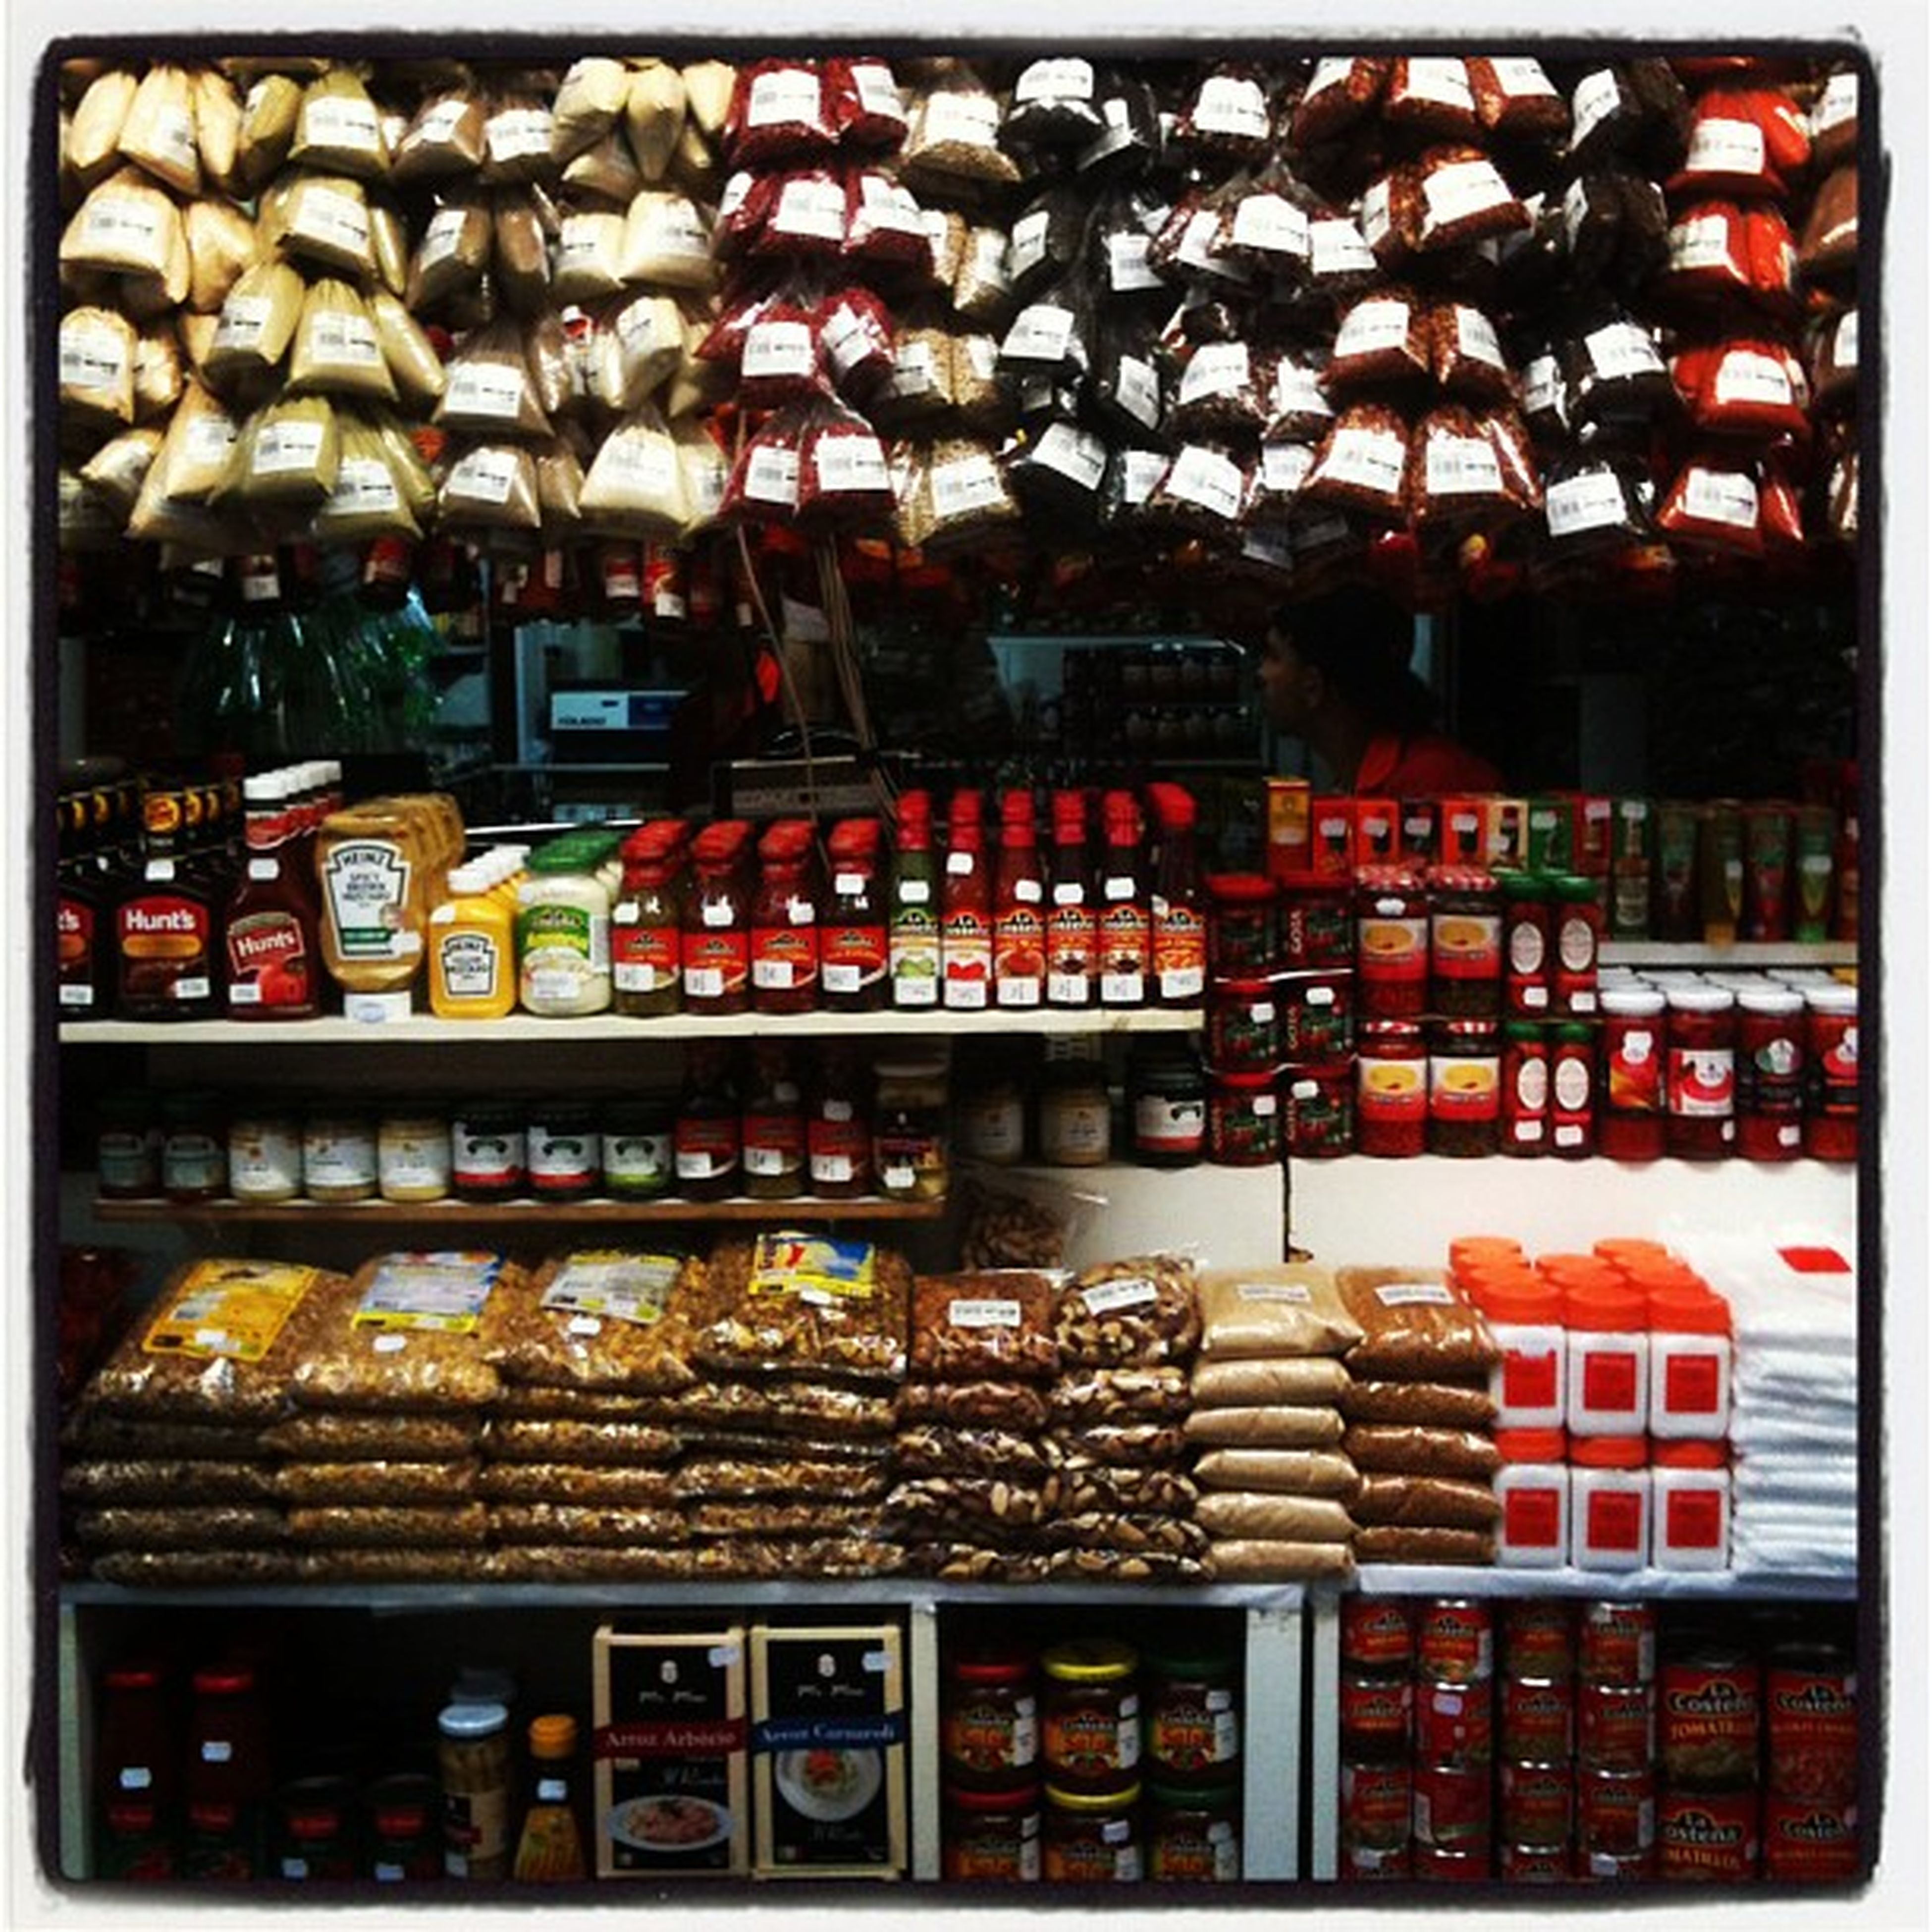 abundance, indoors, food and drink, retail, large group of objects, transfer print, for sale, store, variation, arrangement, choice, market, order, full frame, in a row, food, display, glass - material, shop, market stall